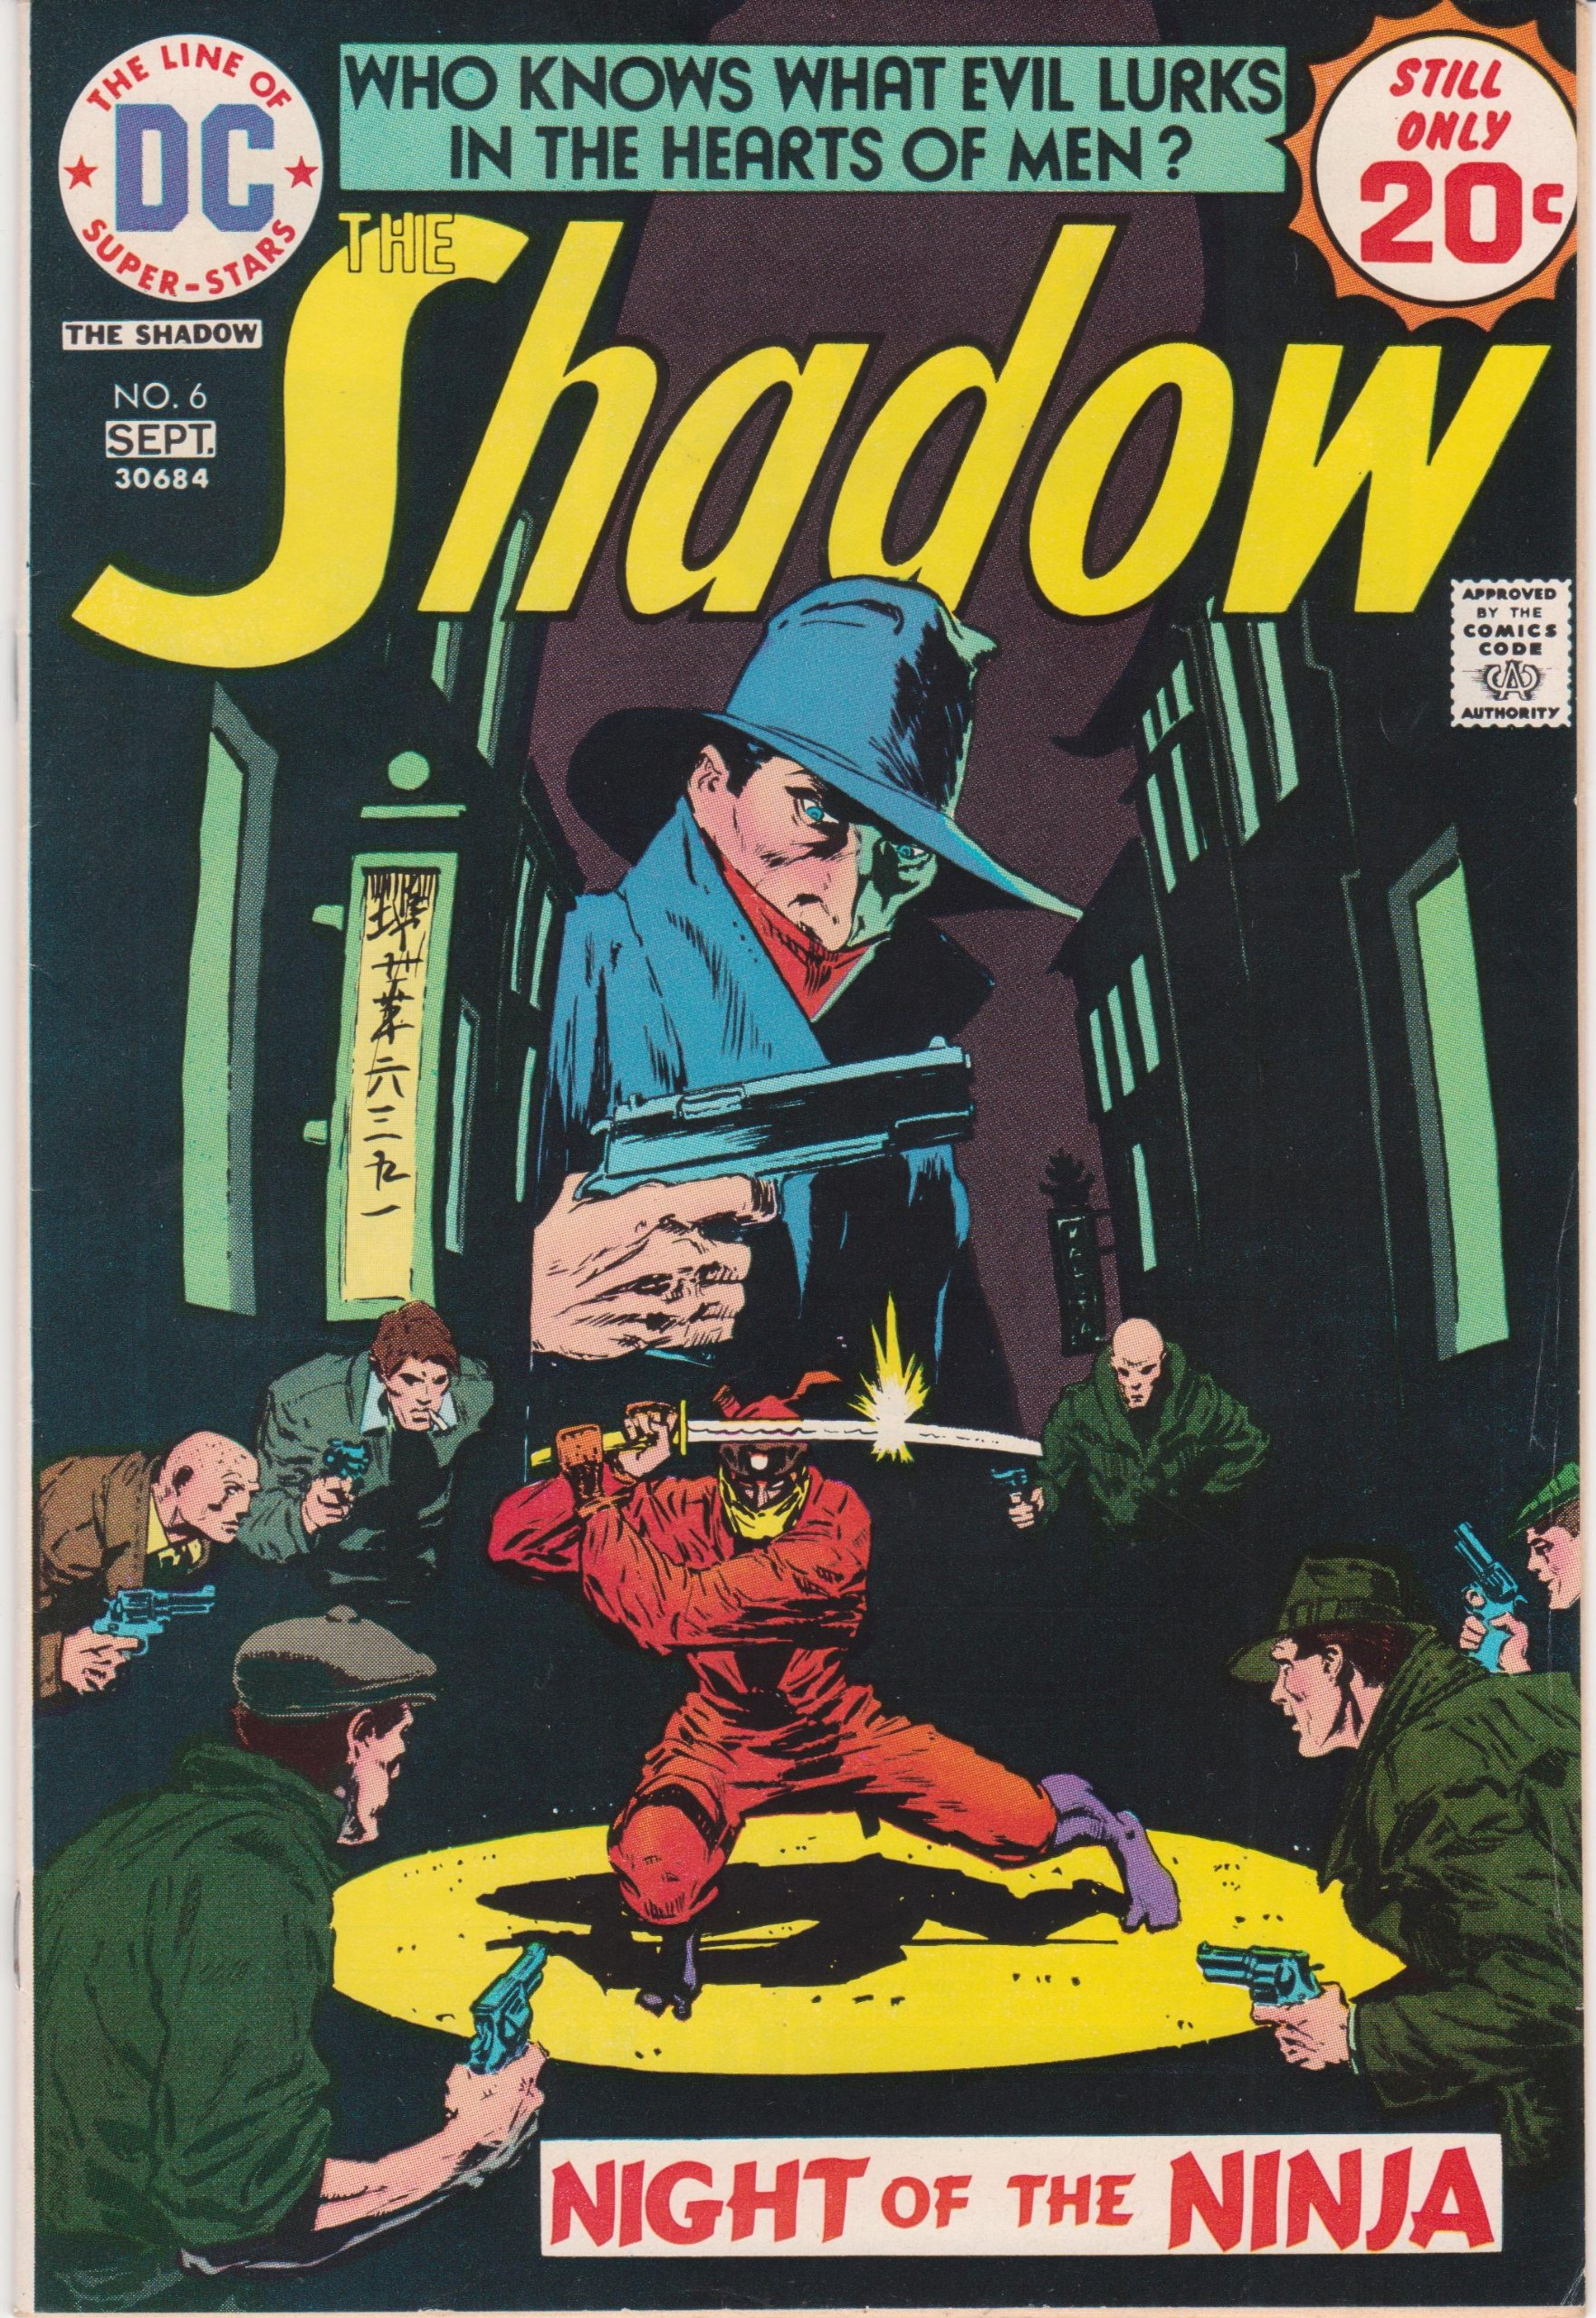 Amazon.com: The Shadow #6 August / September 1974 DC Comics ...